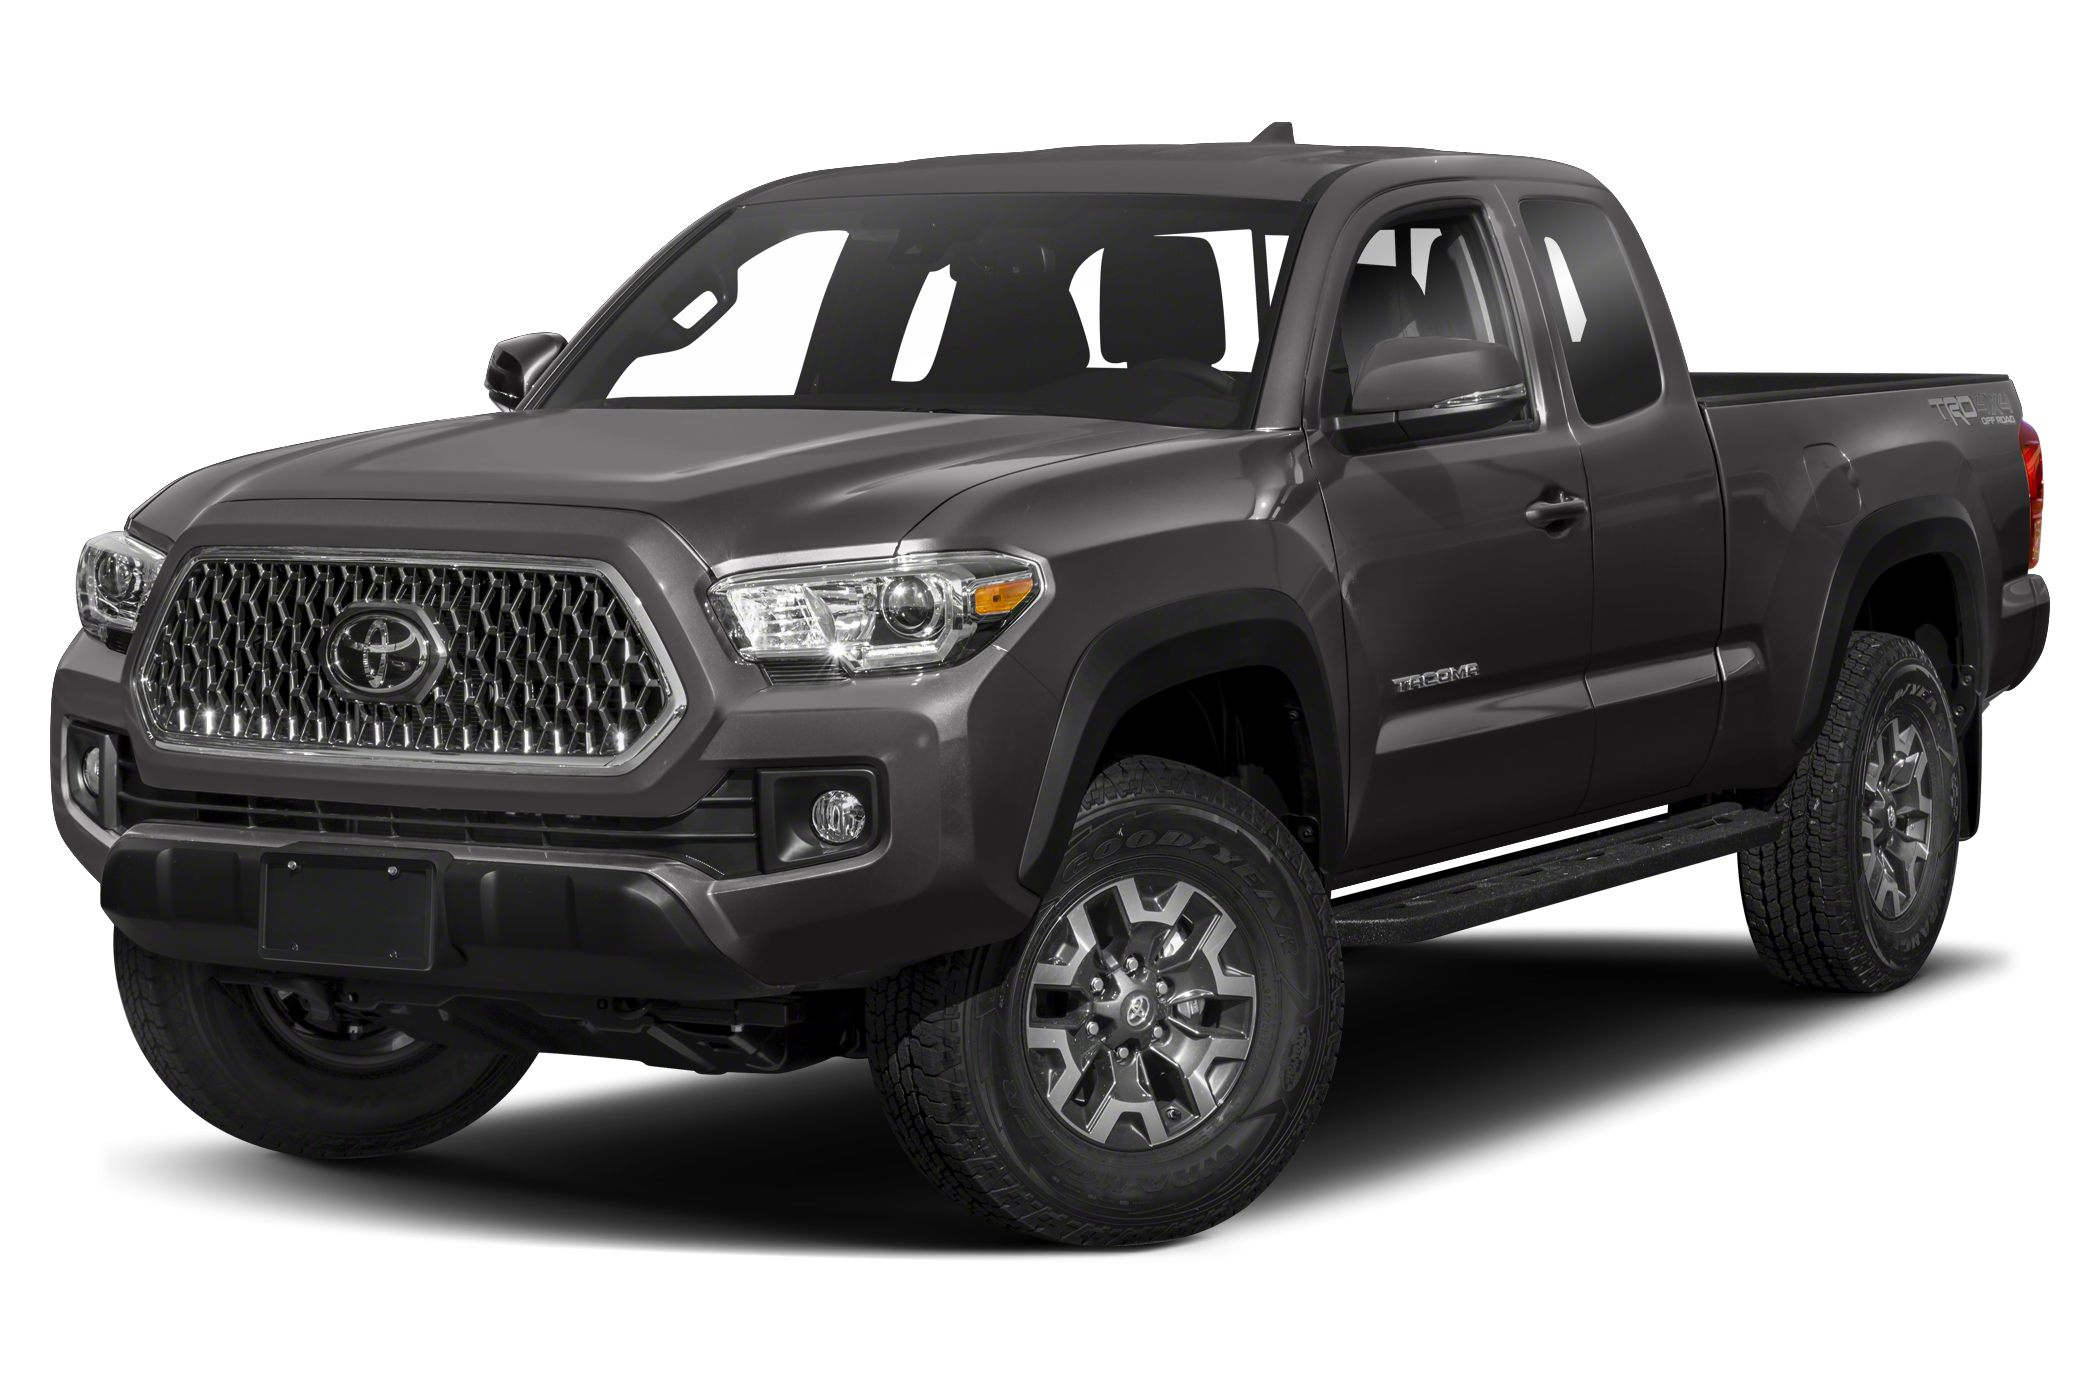 2019 Toyota Tacoma TRD Off Road V6 4x4 Access Cab 127.4 in. WB